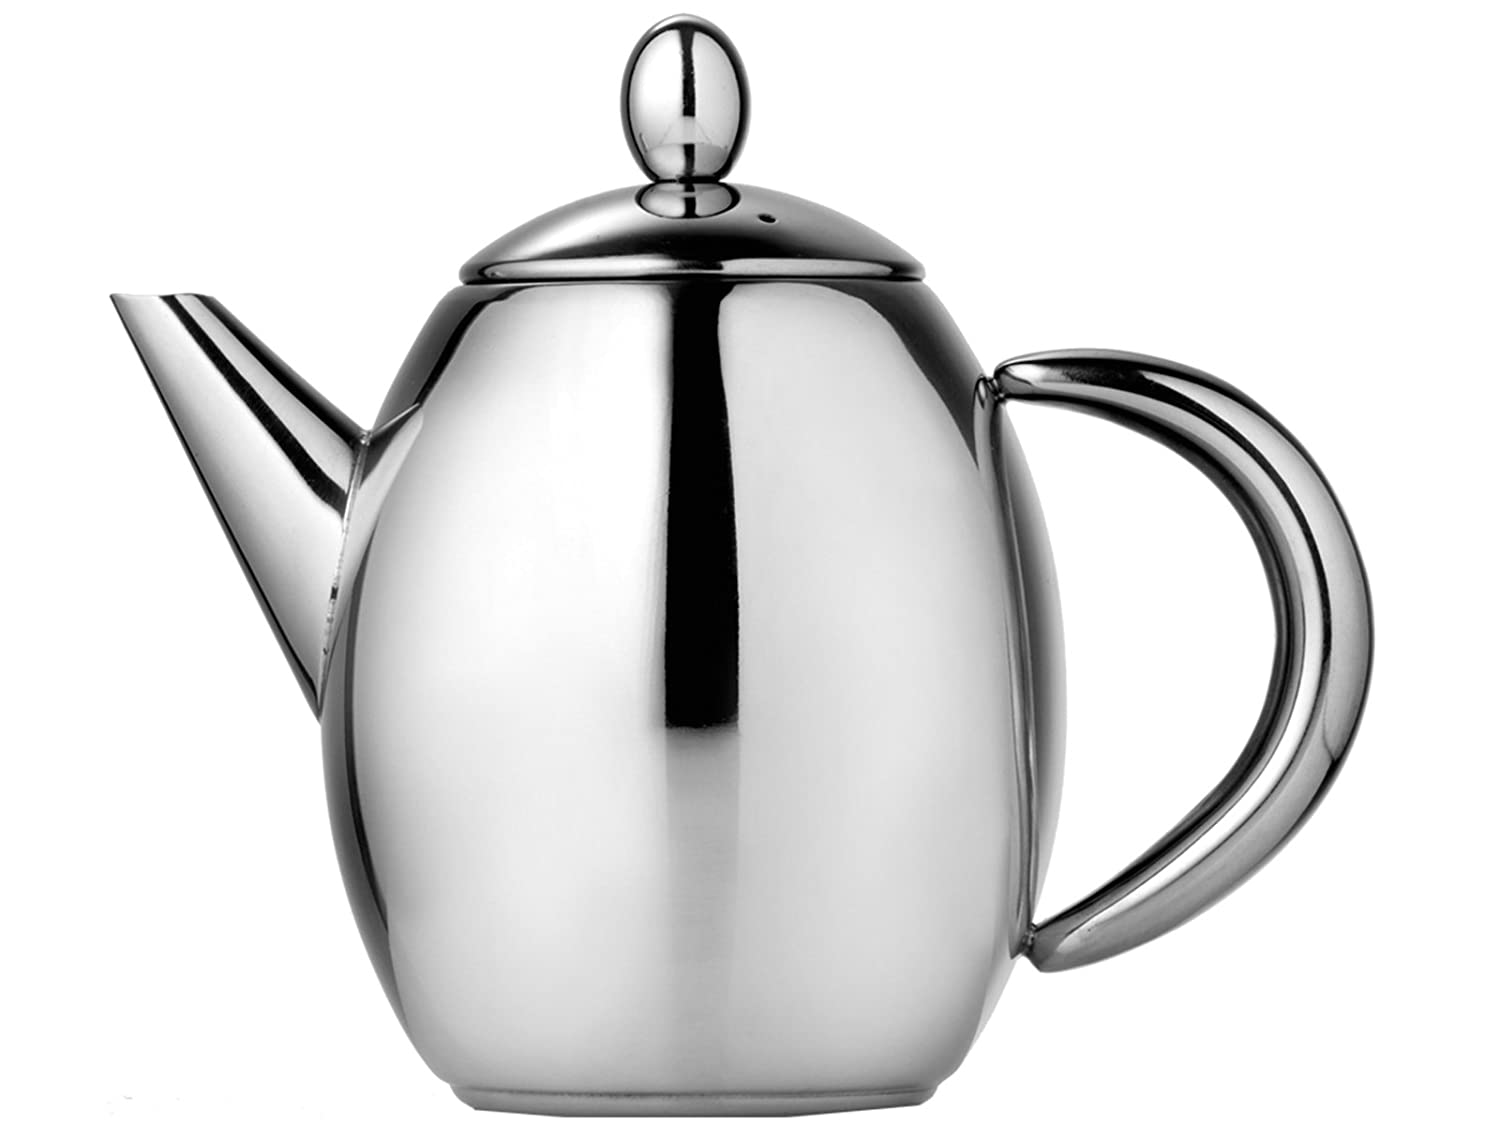 La Cafetière 2-Cup Paris Infuser Teapot, 500 ml (¾ pint) La Cafetiere TP000005